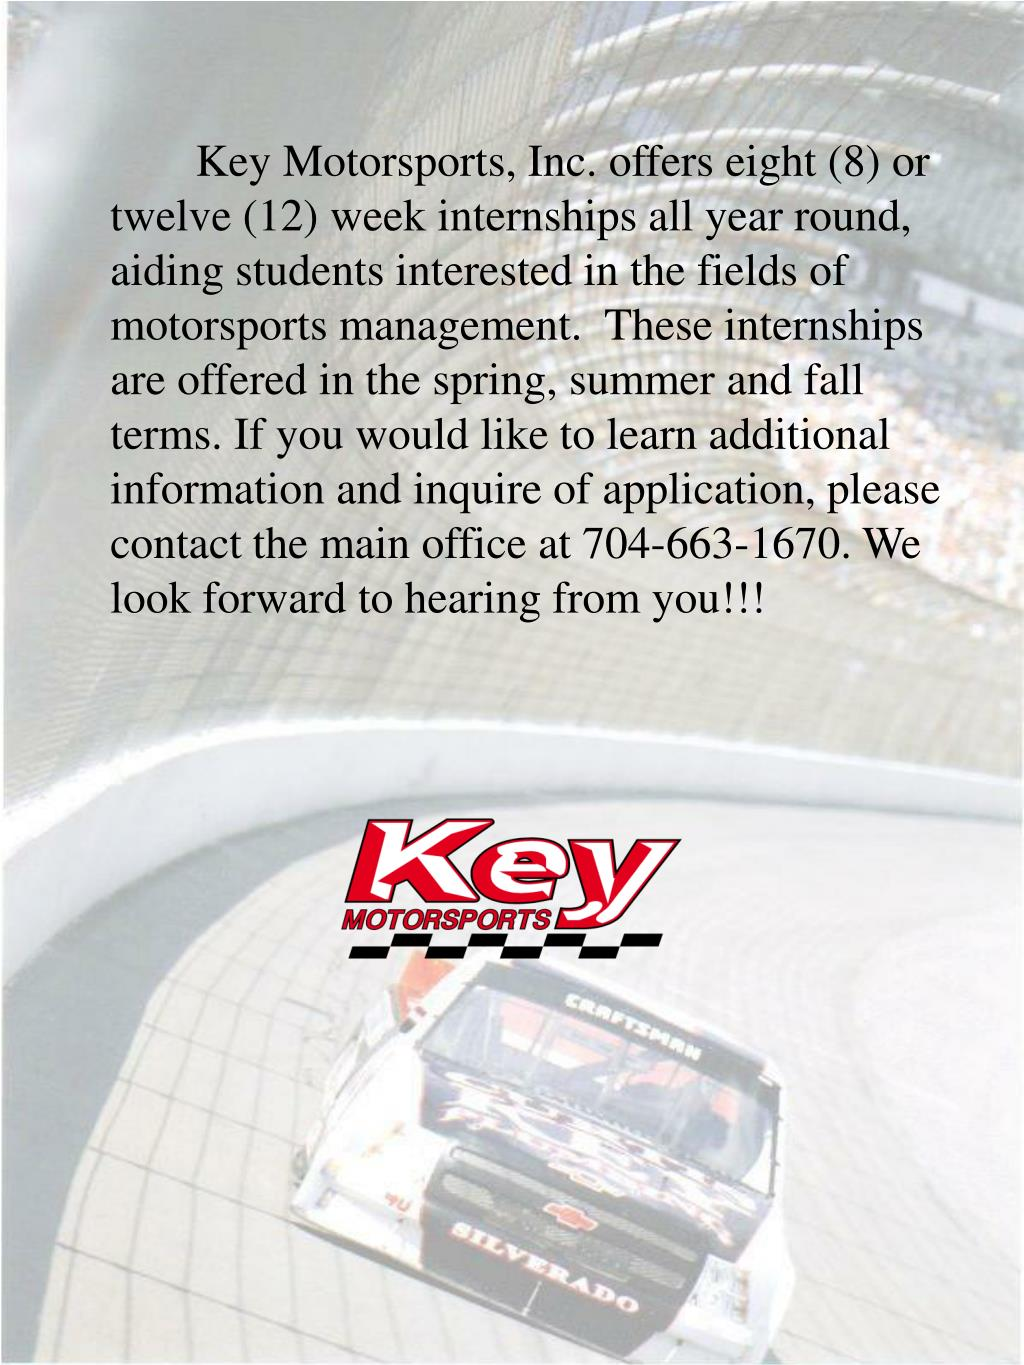 Key Motorsports, Inc. offers eight (8) or twelve (12) week internships all year round, aiding students interested in the fields of motorsports management.  These internships are offered in the spring, summer and fall terms. If you would like to learn additional information and inquire of application, please contact the main office at 704-663-1670. We look forward to hearing from you!!!